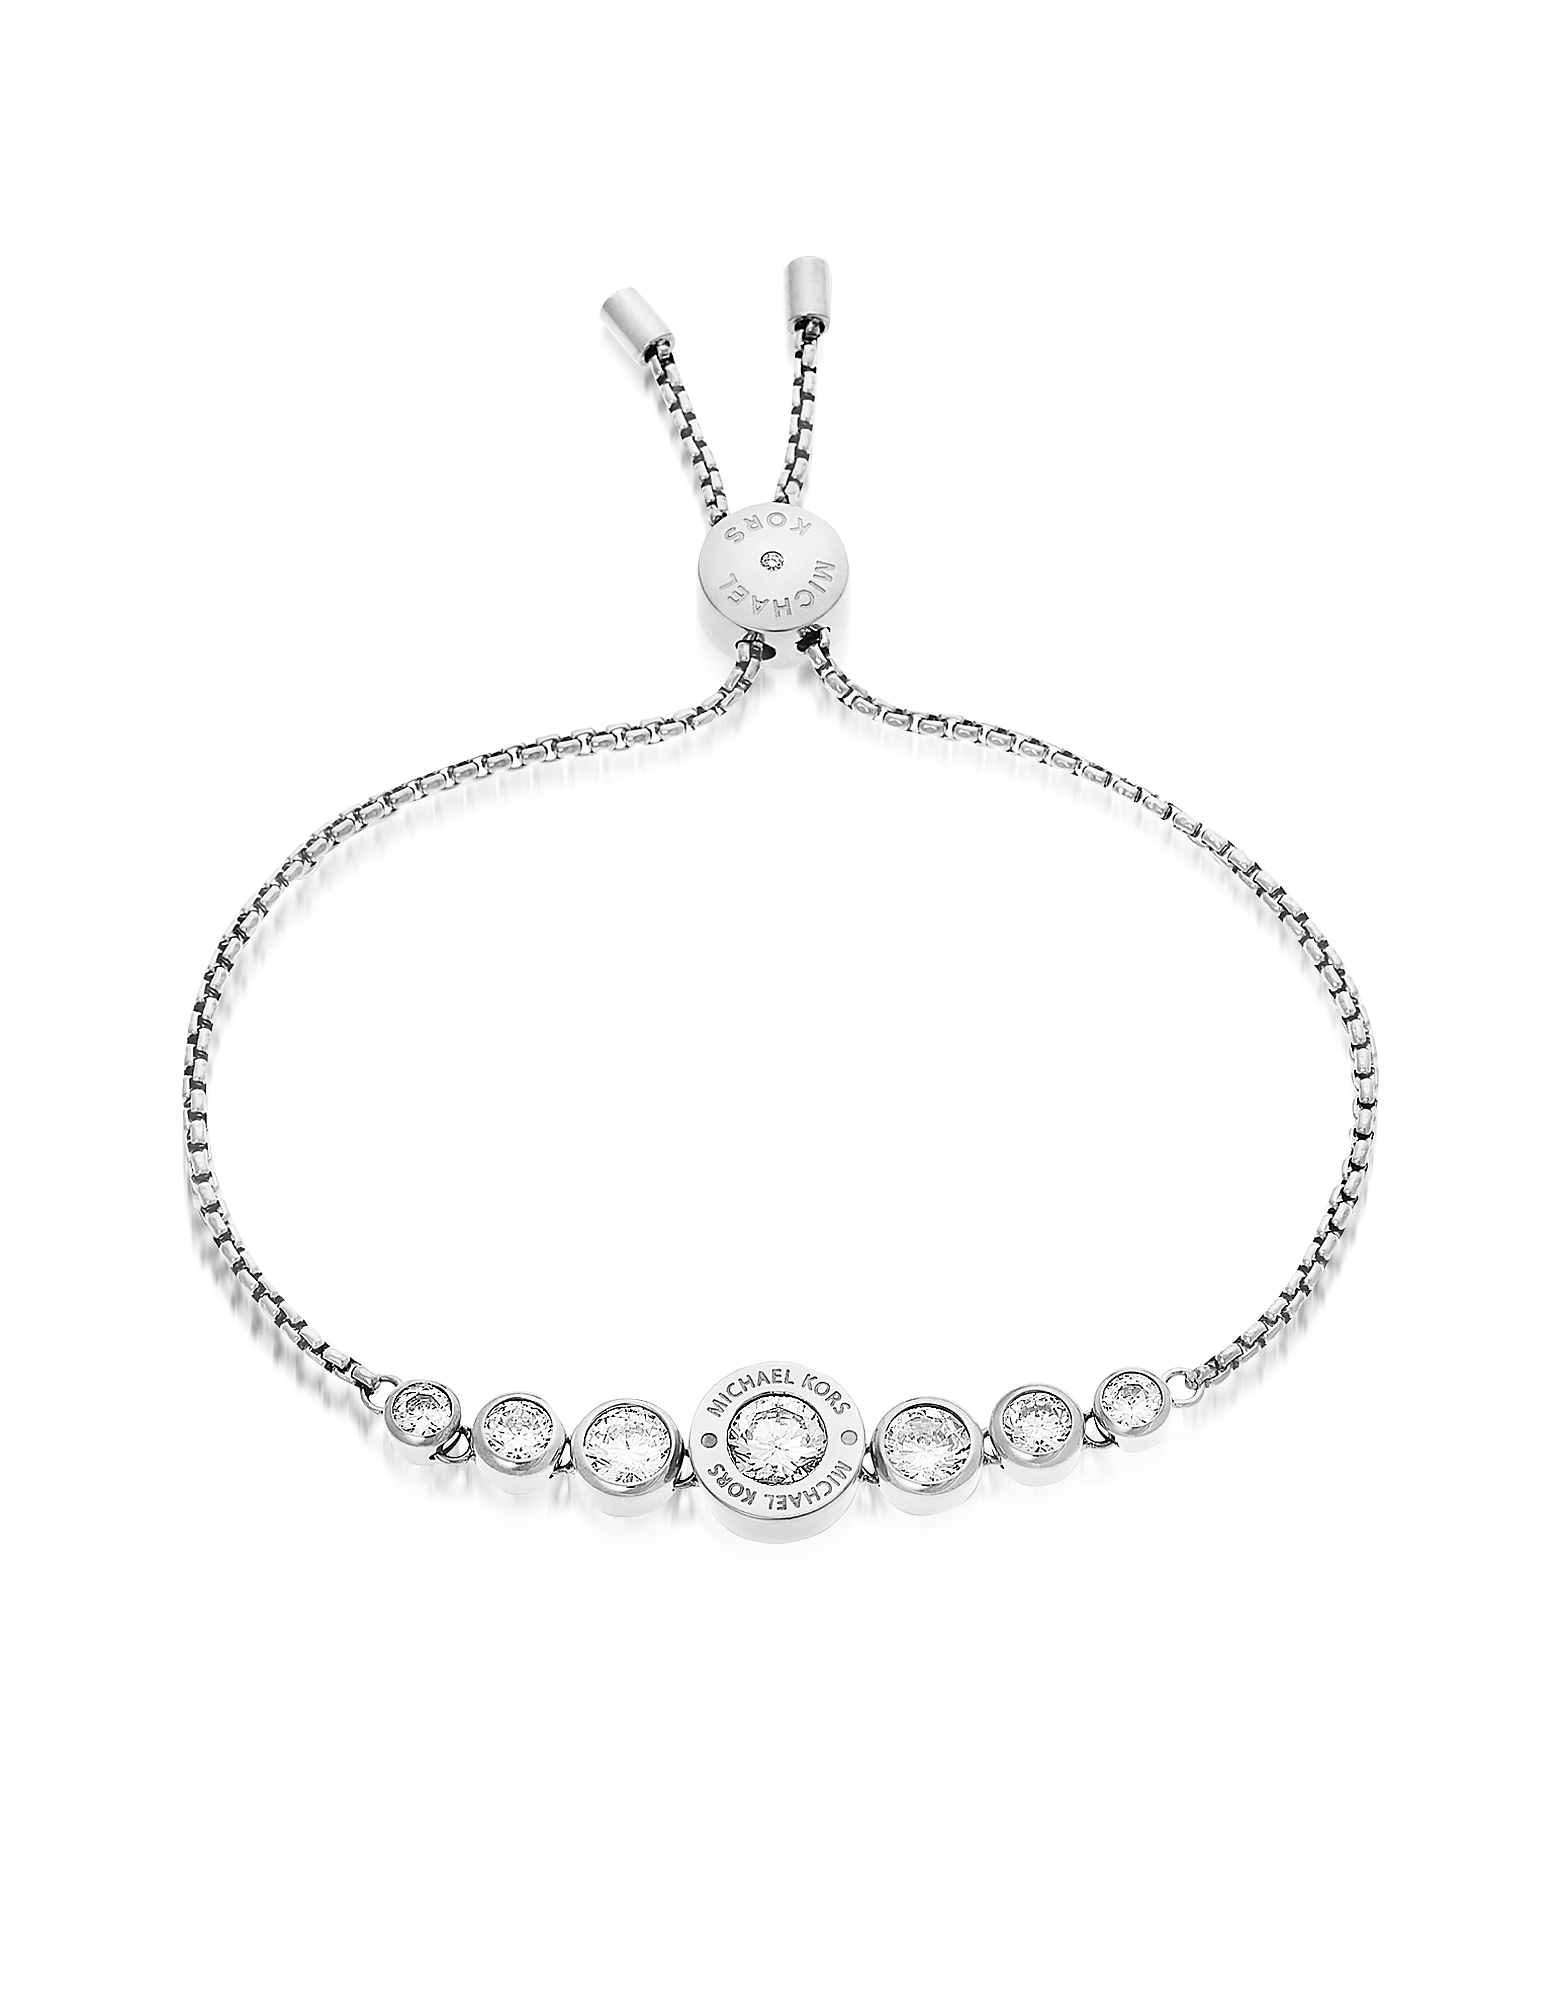 Michael Kors Bracelets, Brilliance Stainless Steel and Crystals Bracelet